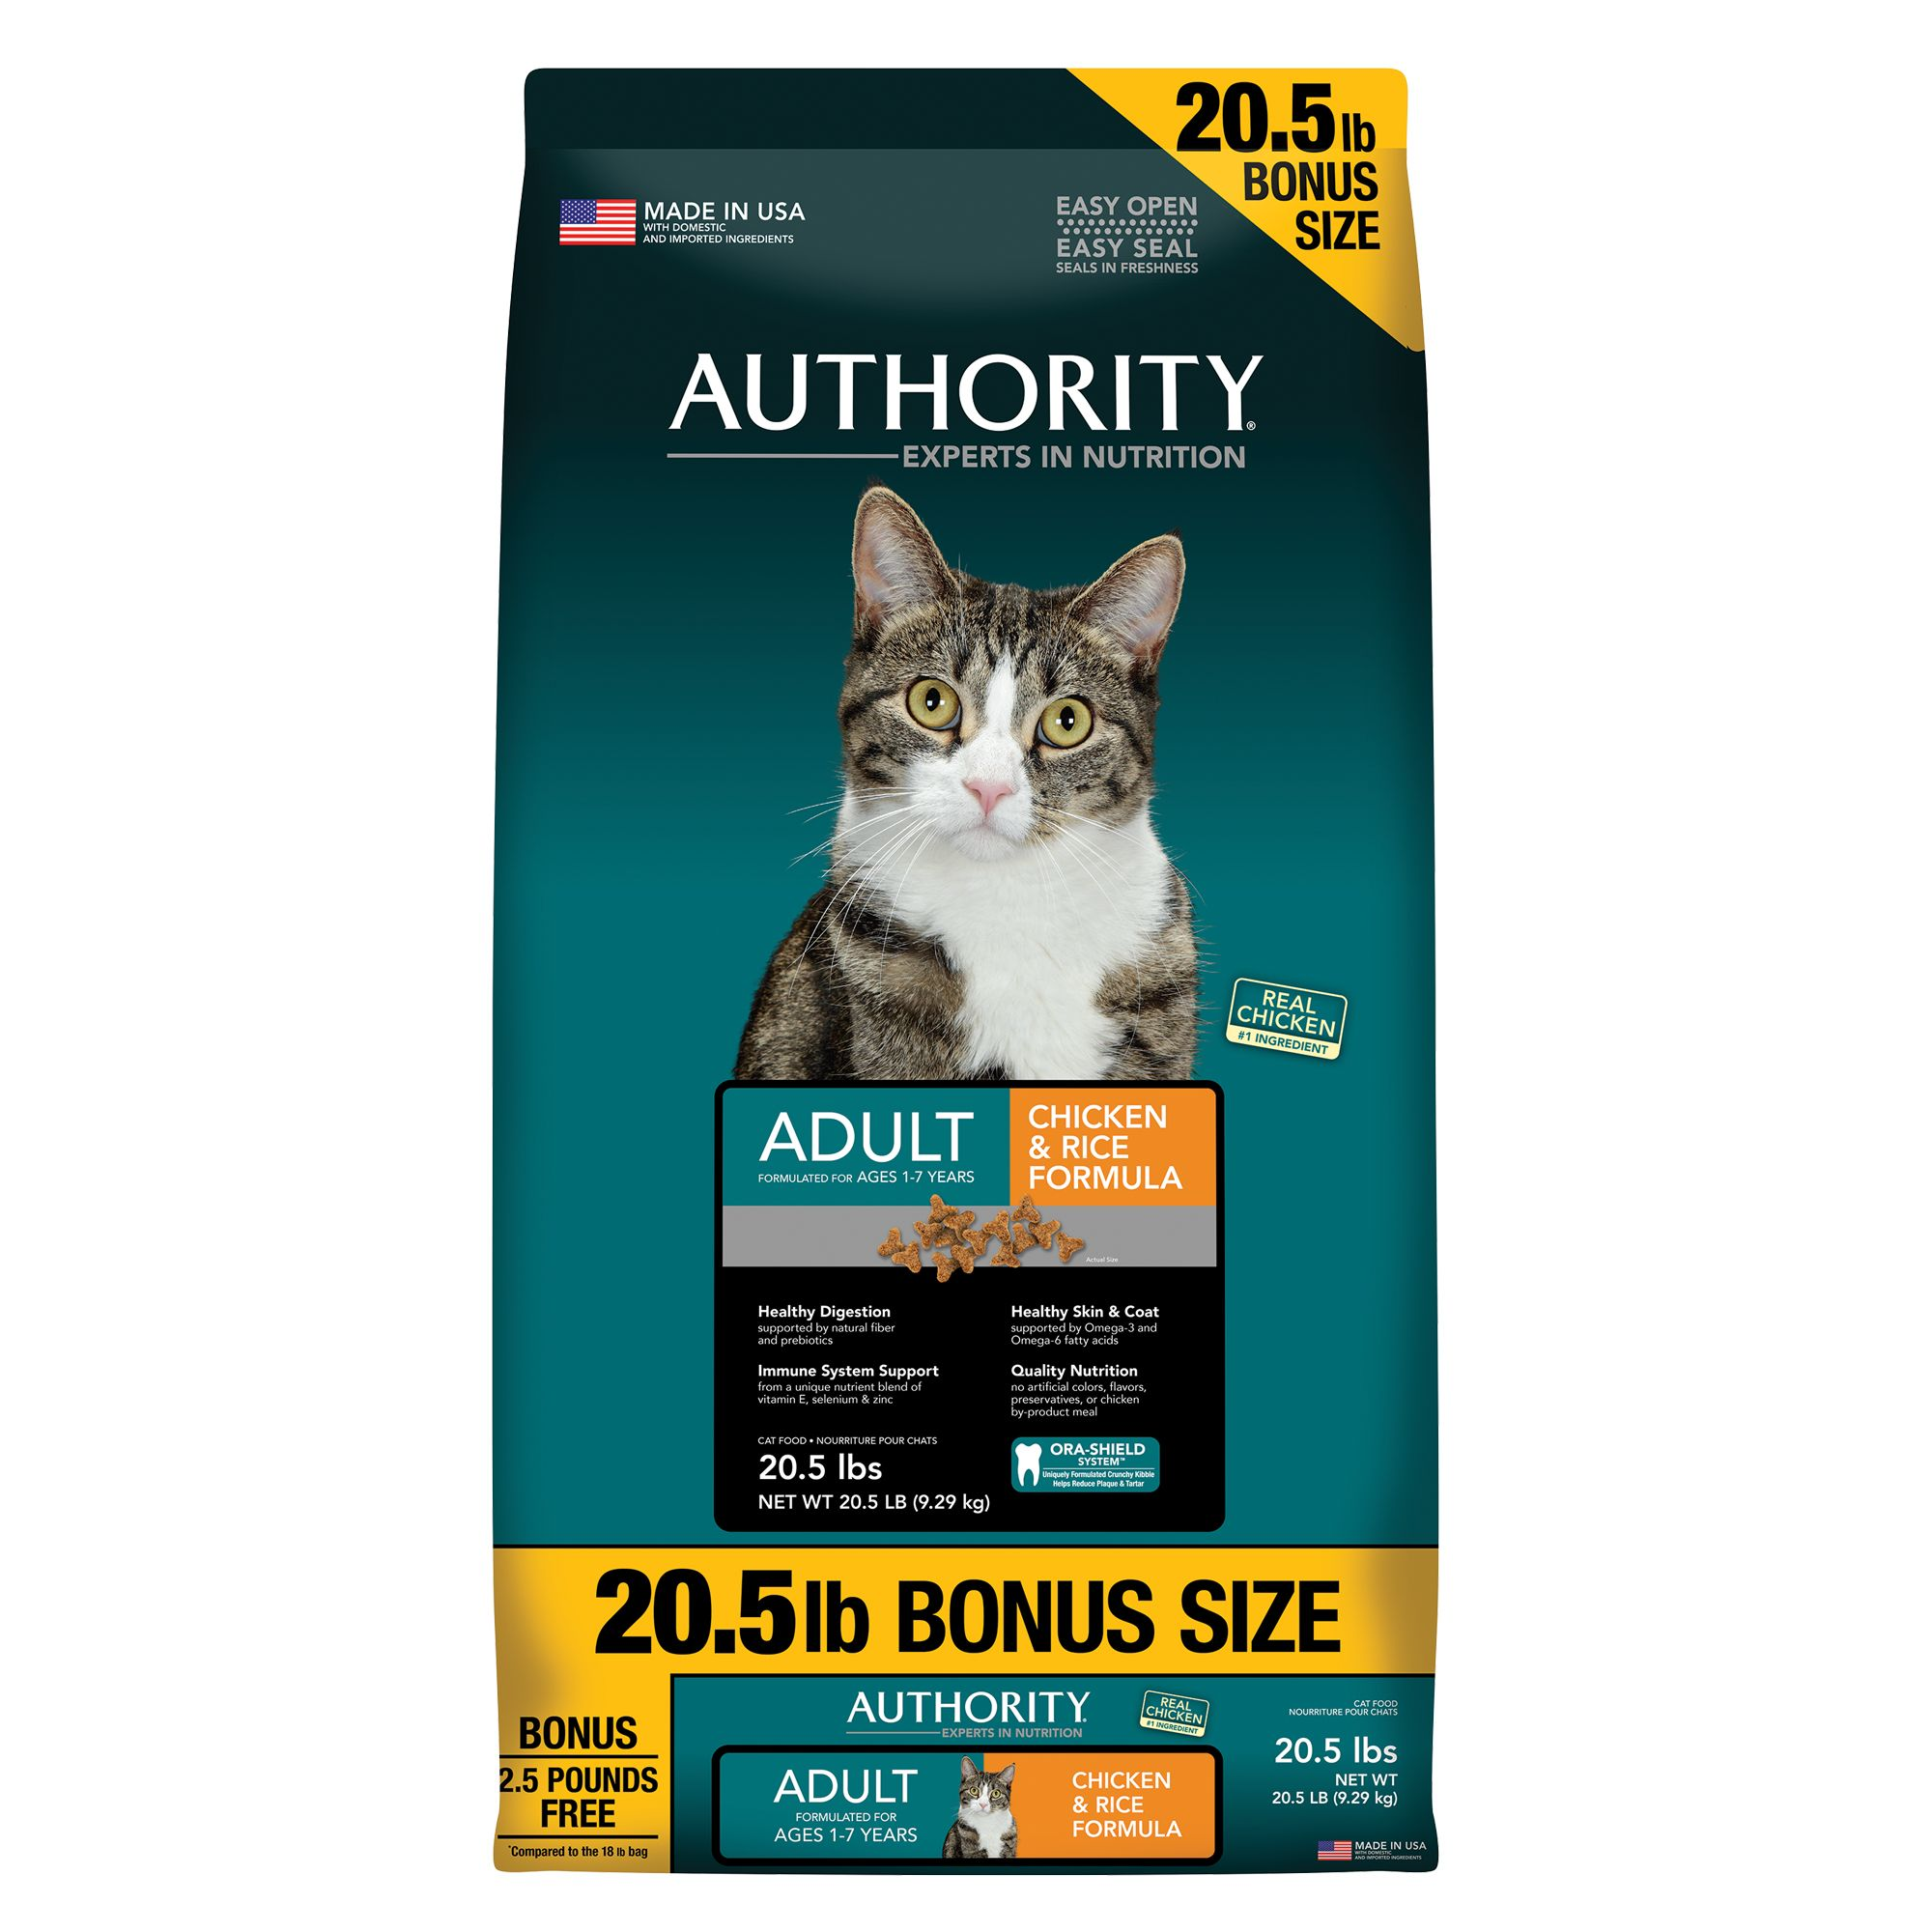 Authority Adult Cat Food Chicken And Rice Size 20.5 Lb Bonus Bag